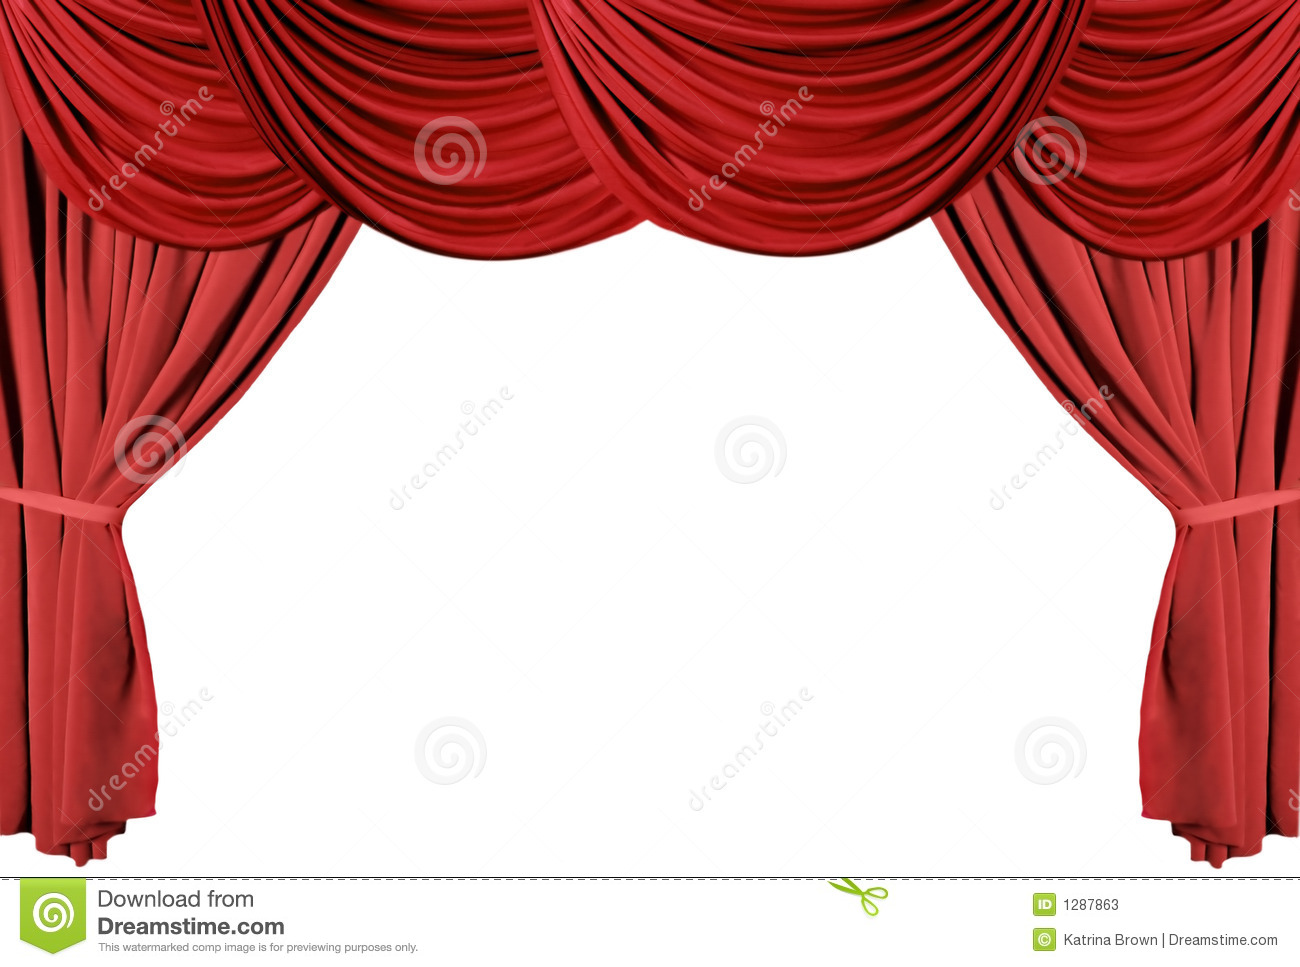 red draped theater curtains series 3 stock image image of culture